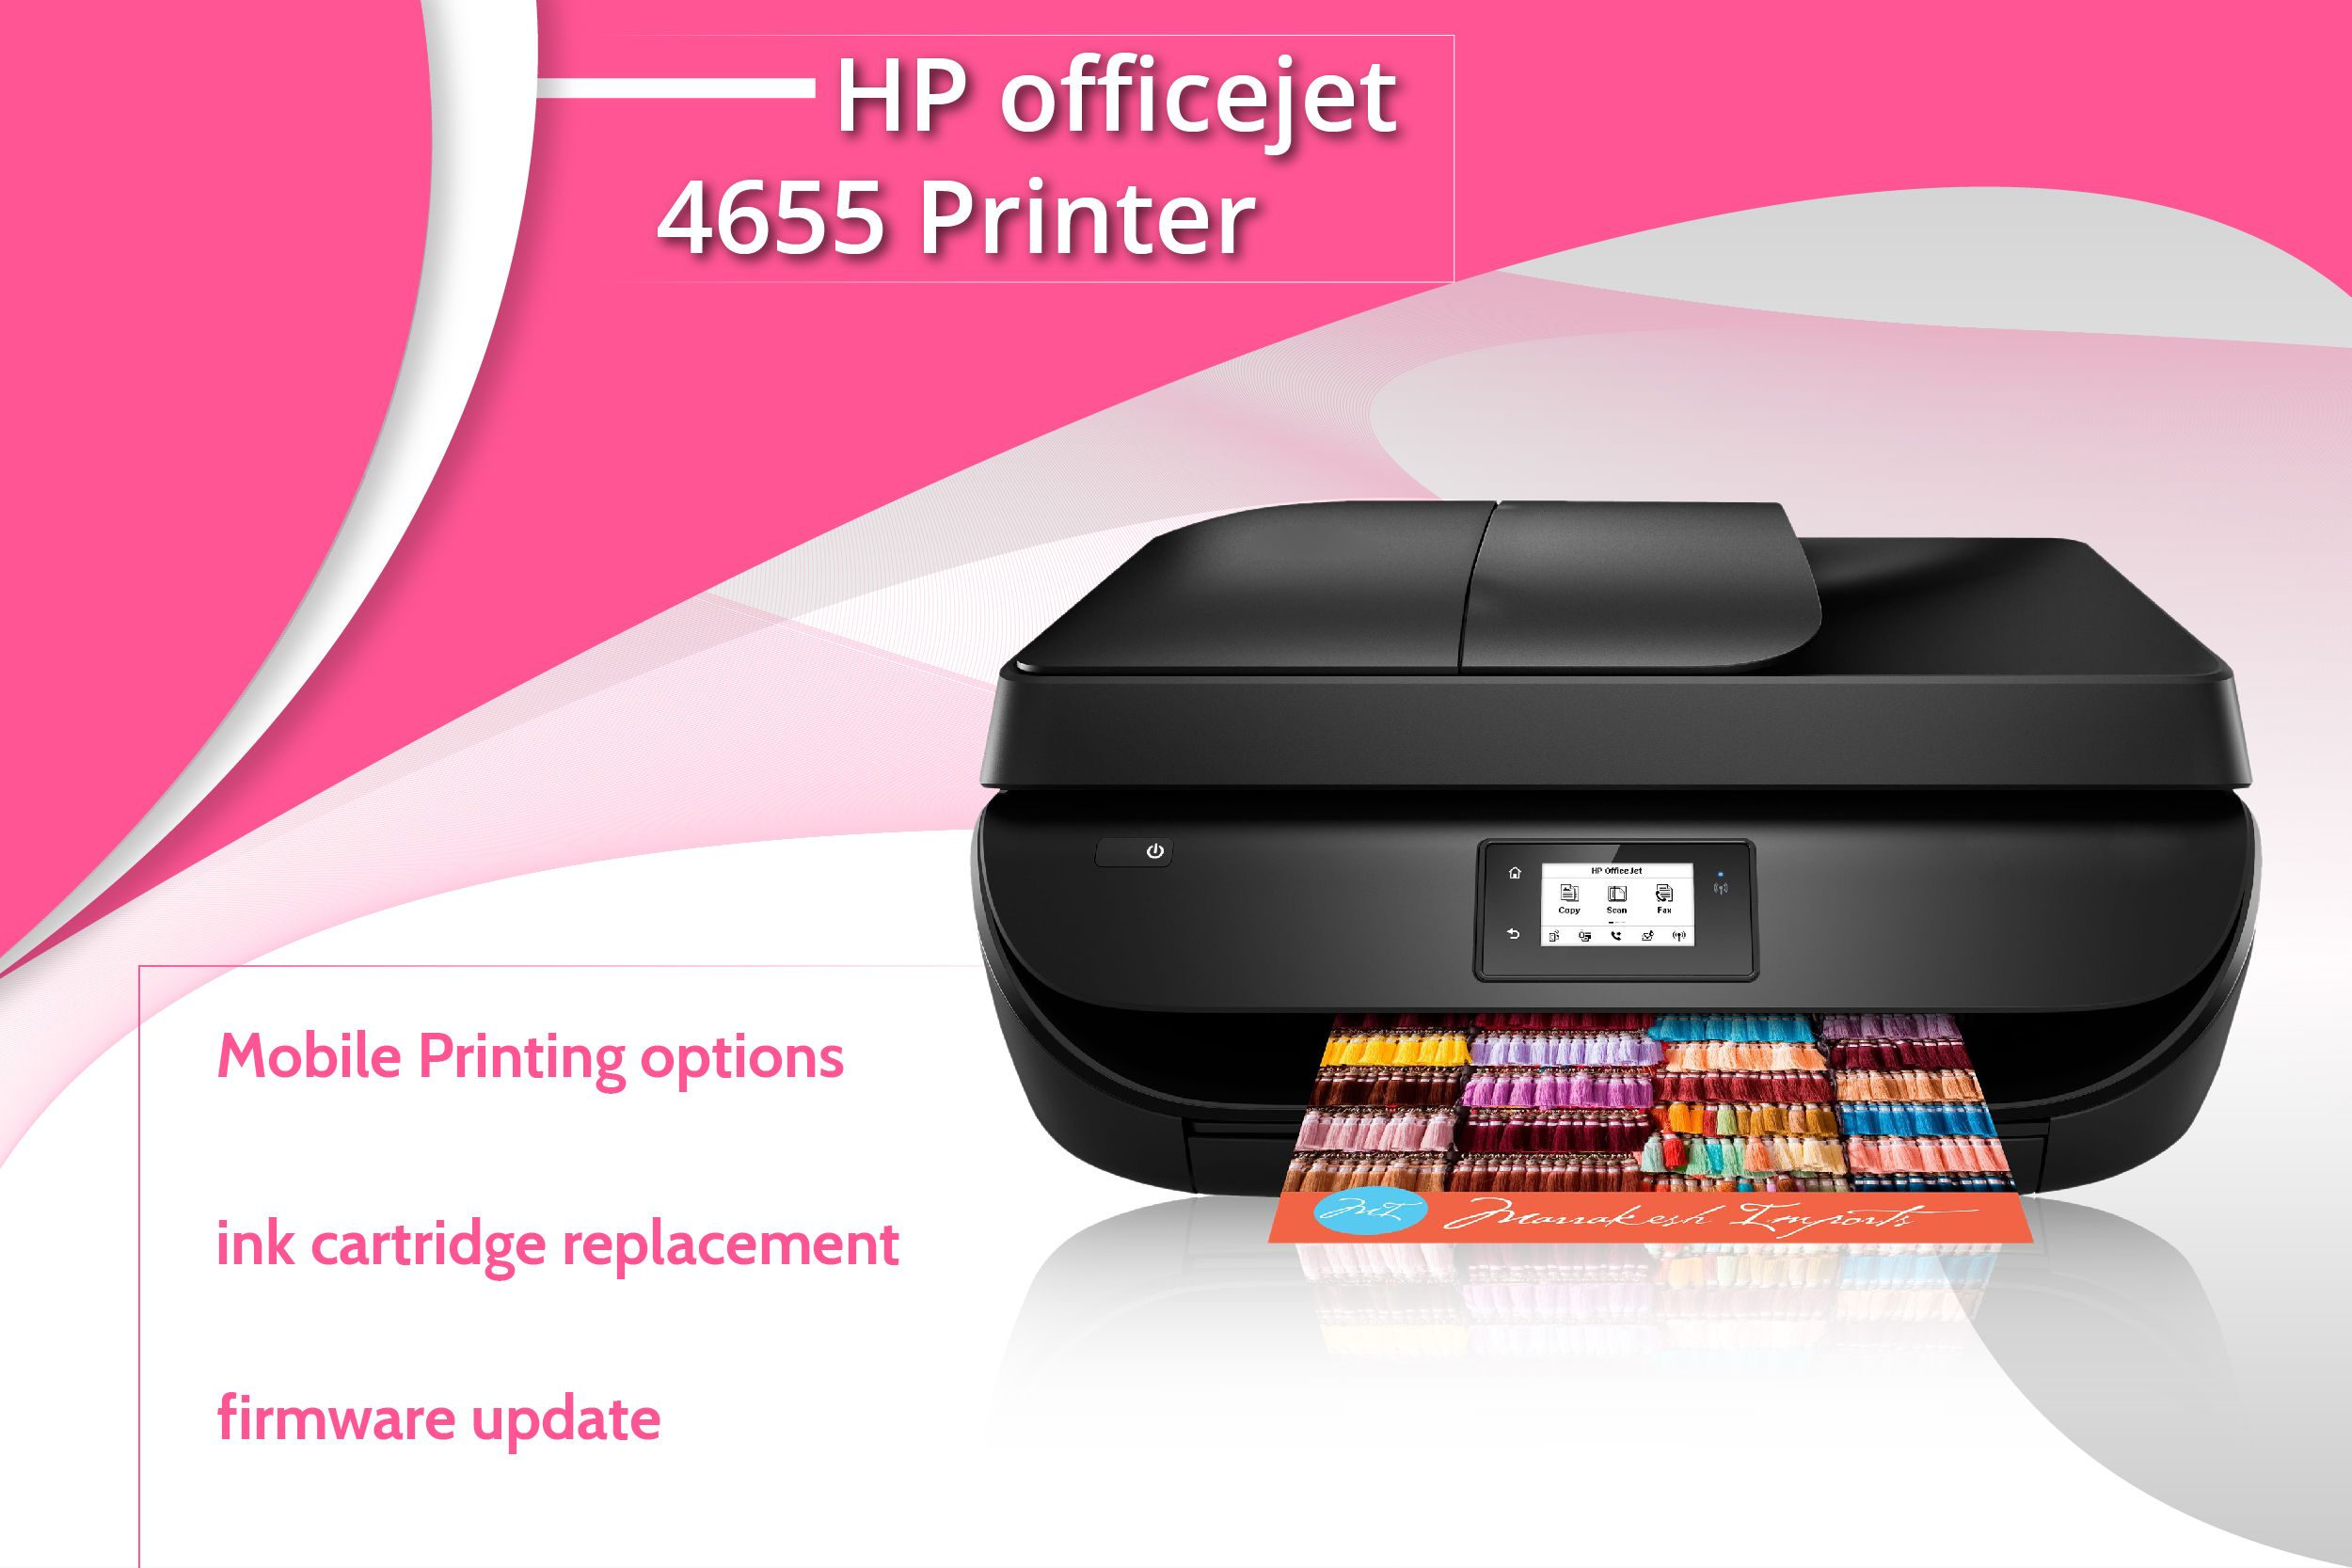 Our #hp #printer #support #service team will provide best